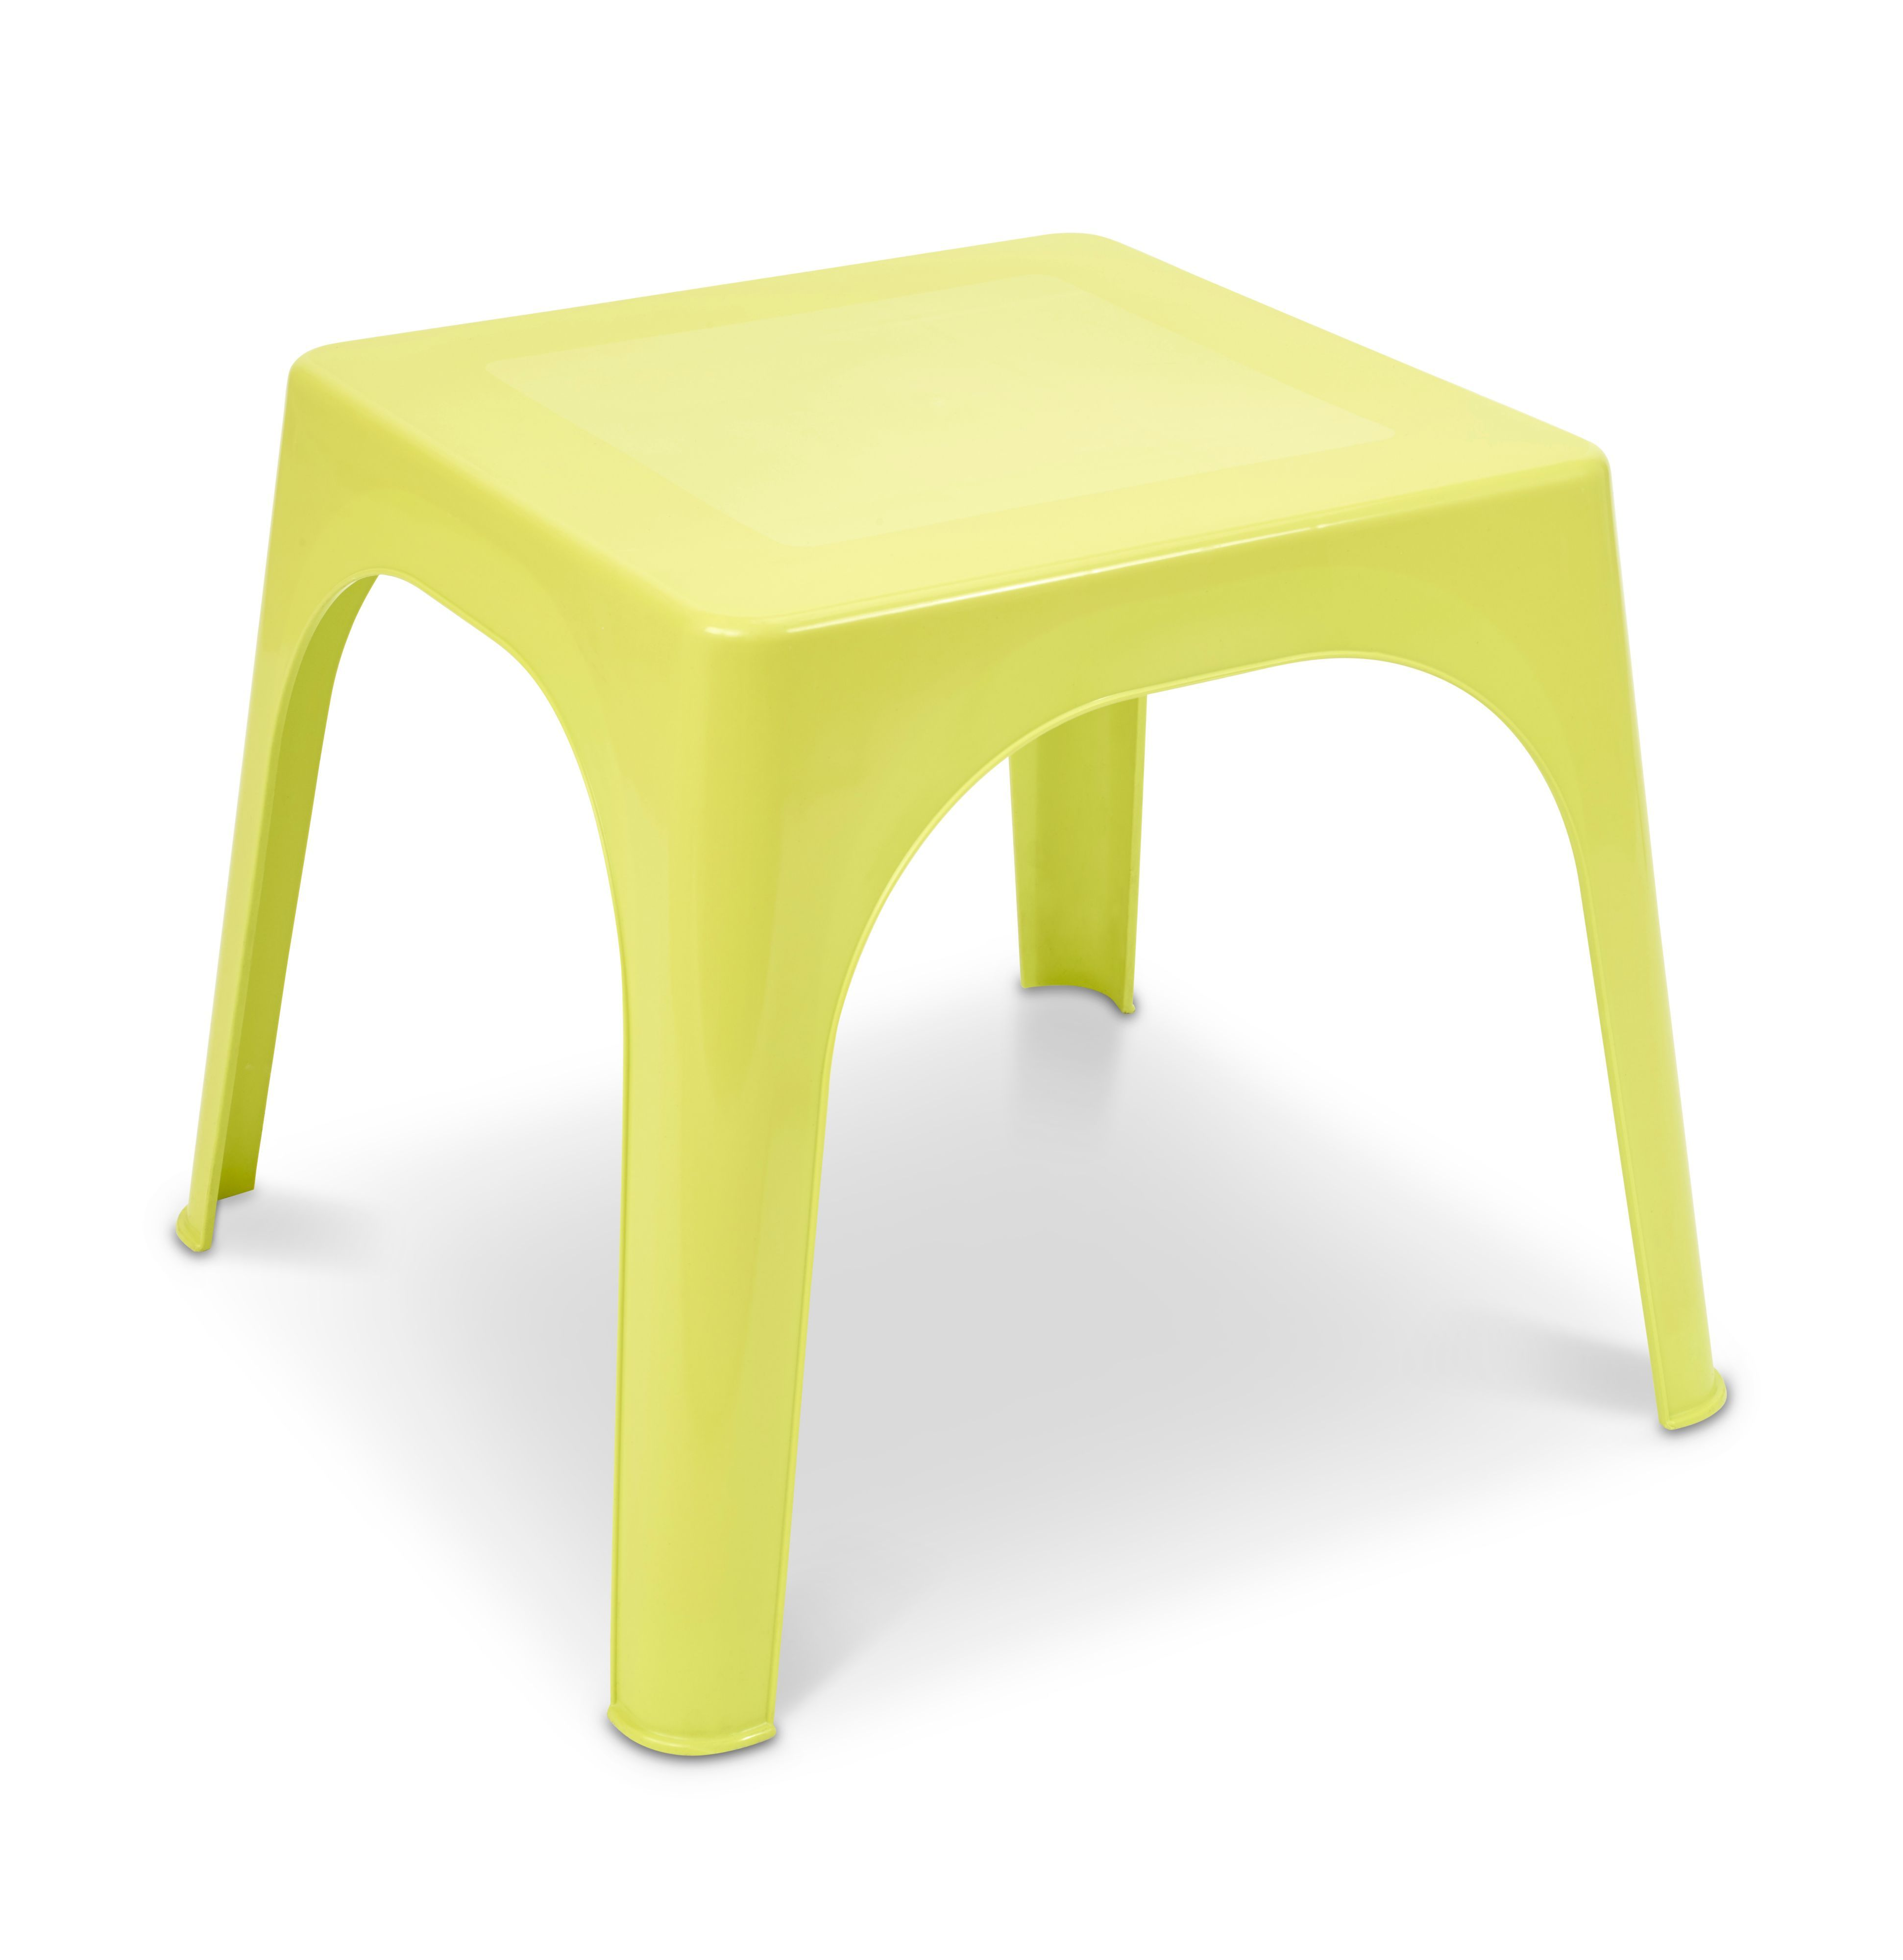 Incredible 10 Reduced Noli Lime Green Plastic 4 Seater Kids Table Gmtry Best Dining Table And Chair Ideas Images Gmtryco